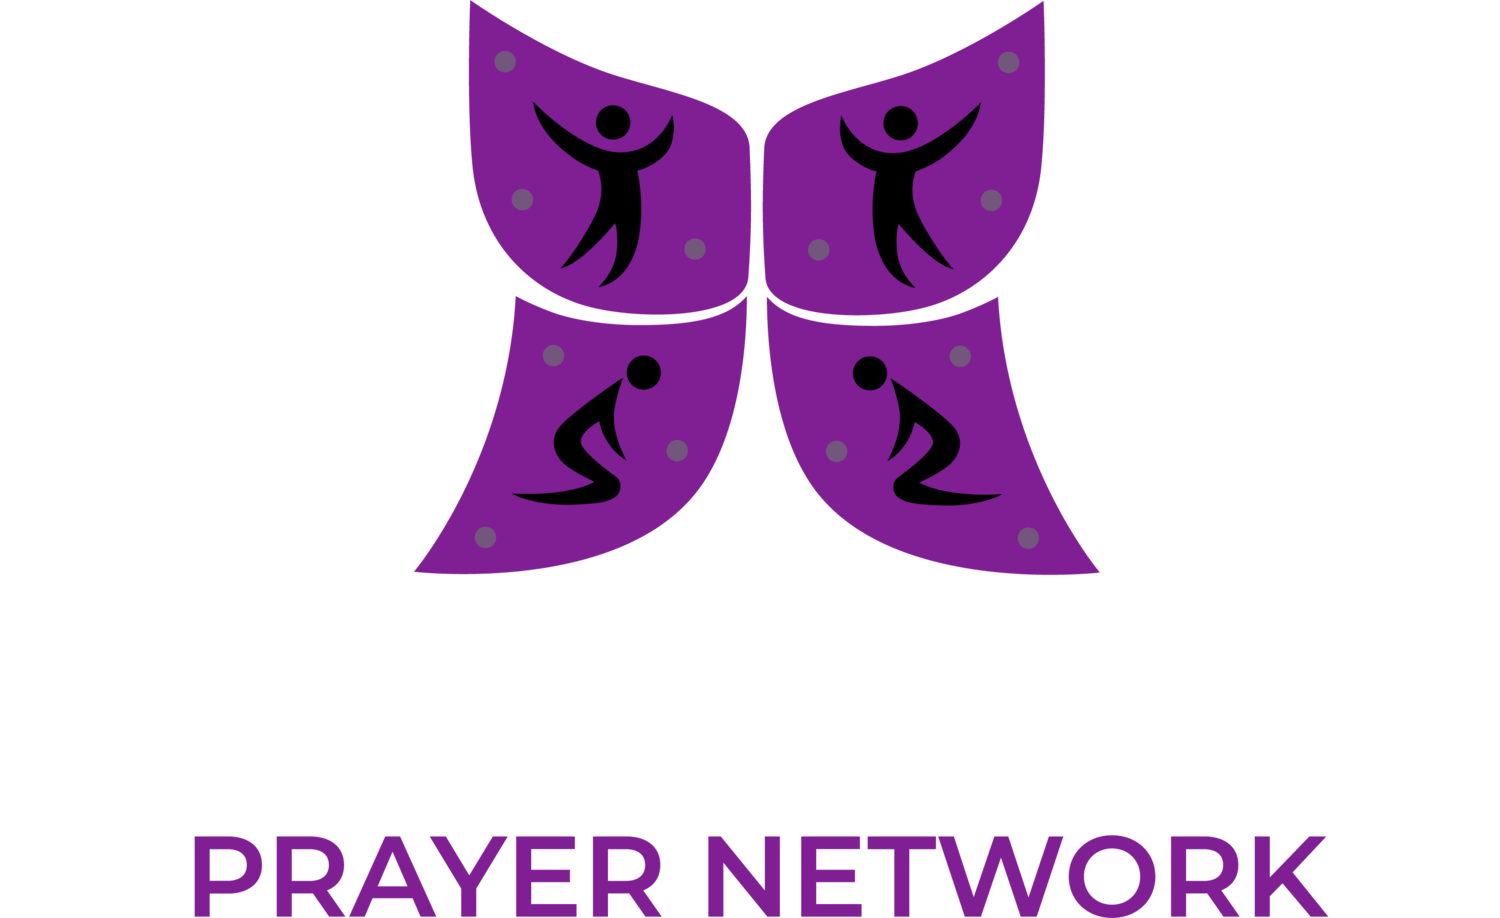 Transformation Prayer Network